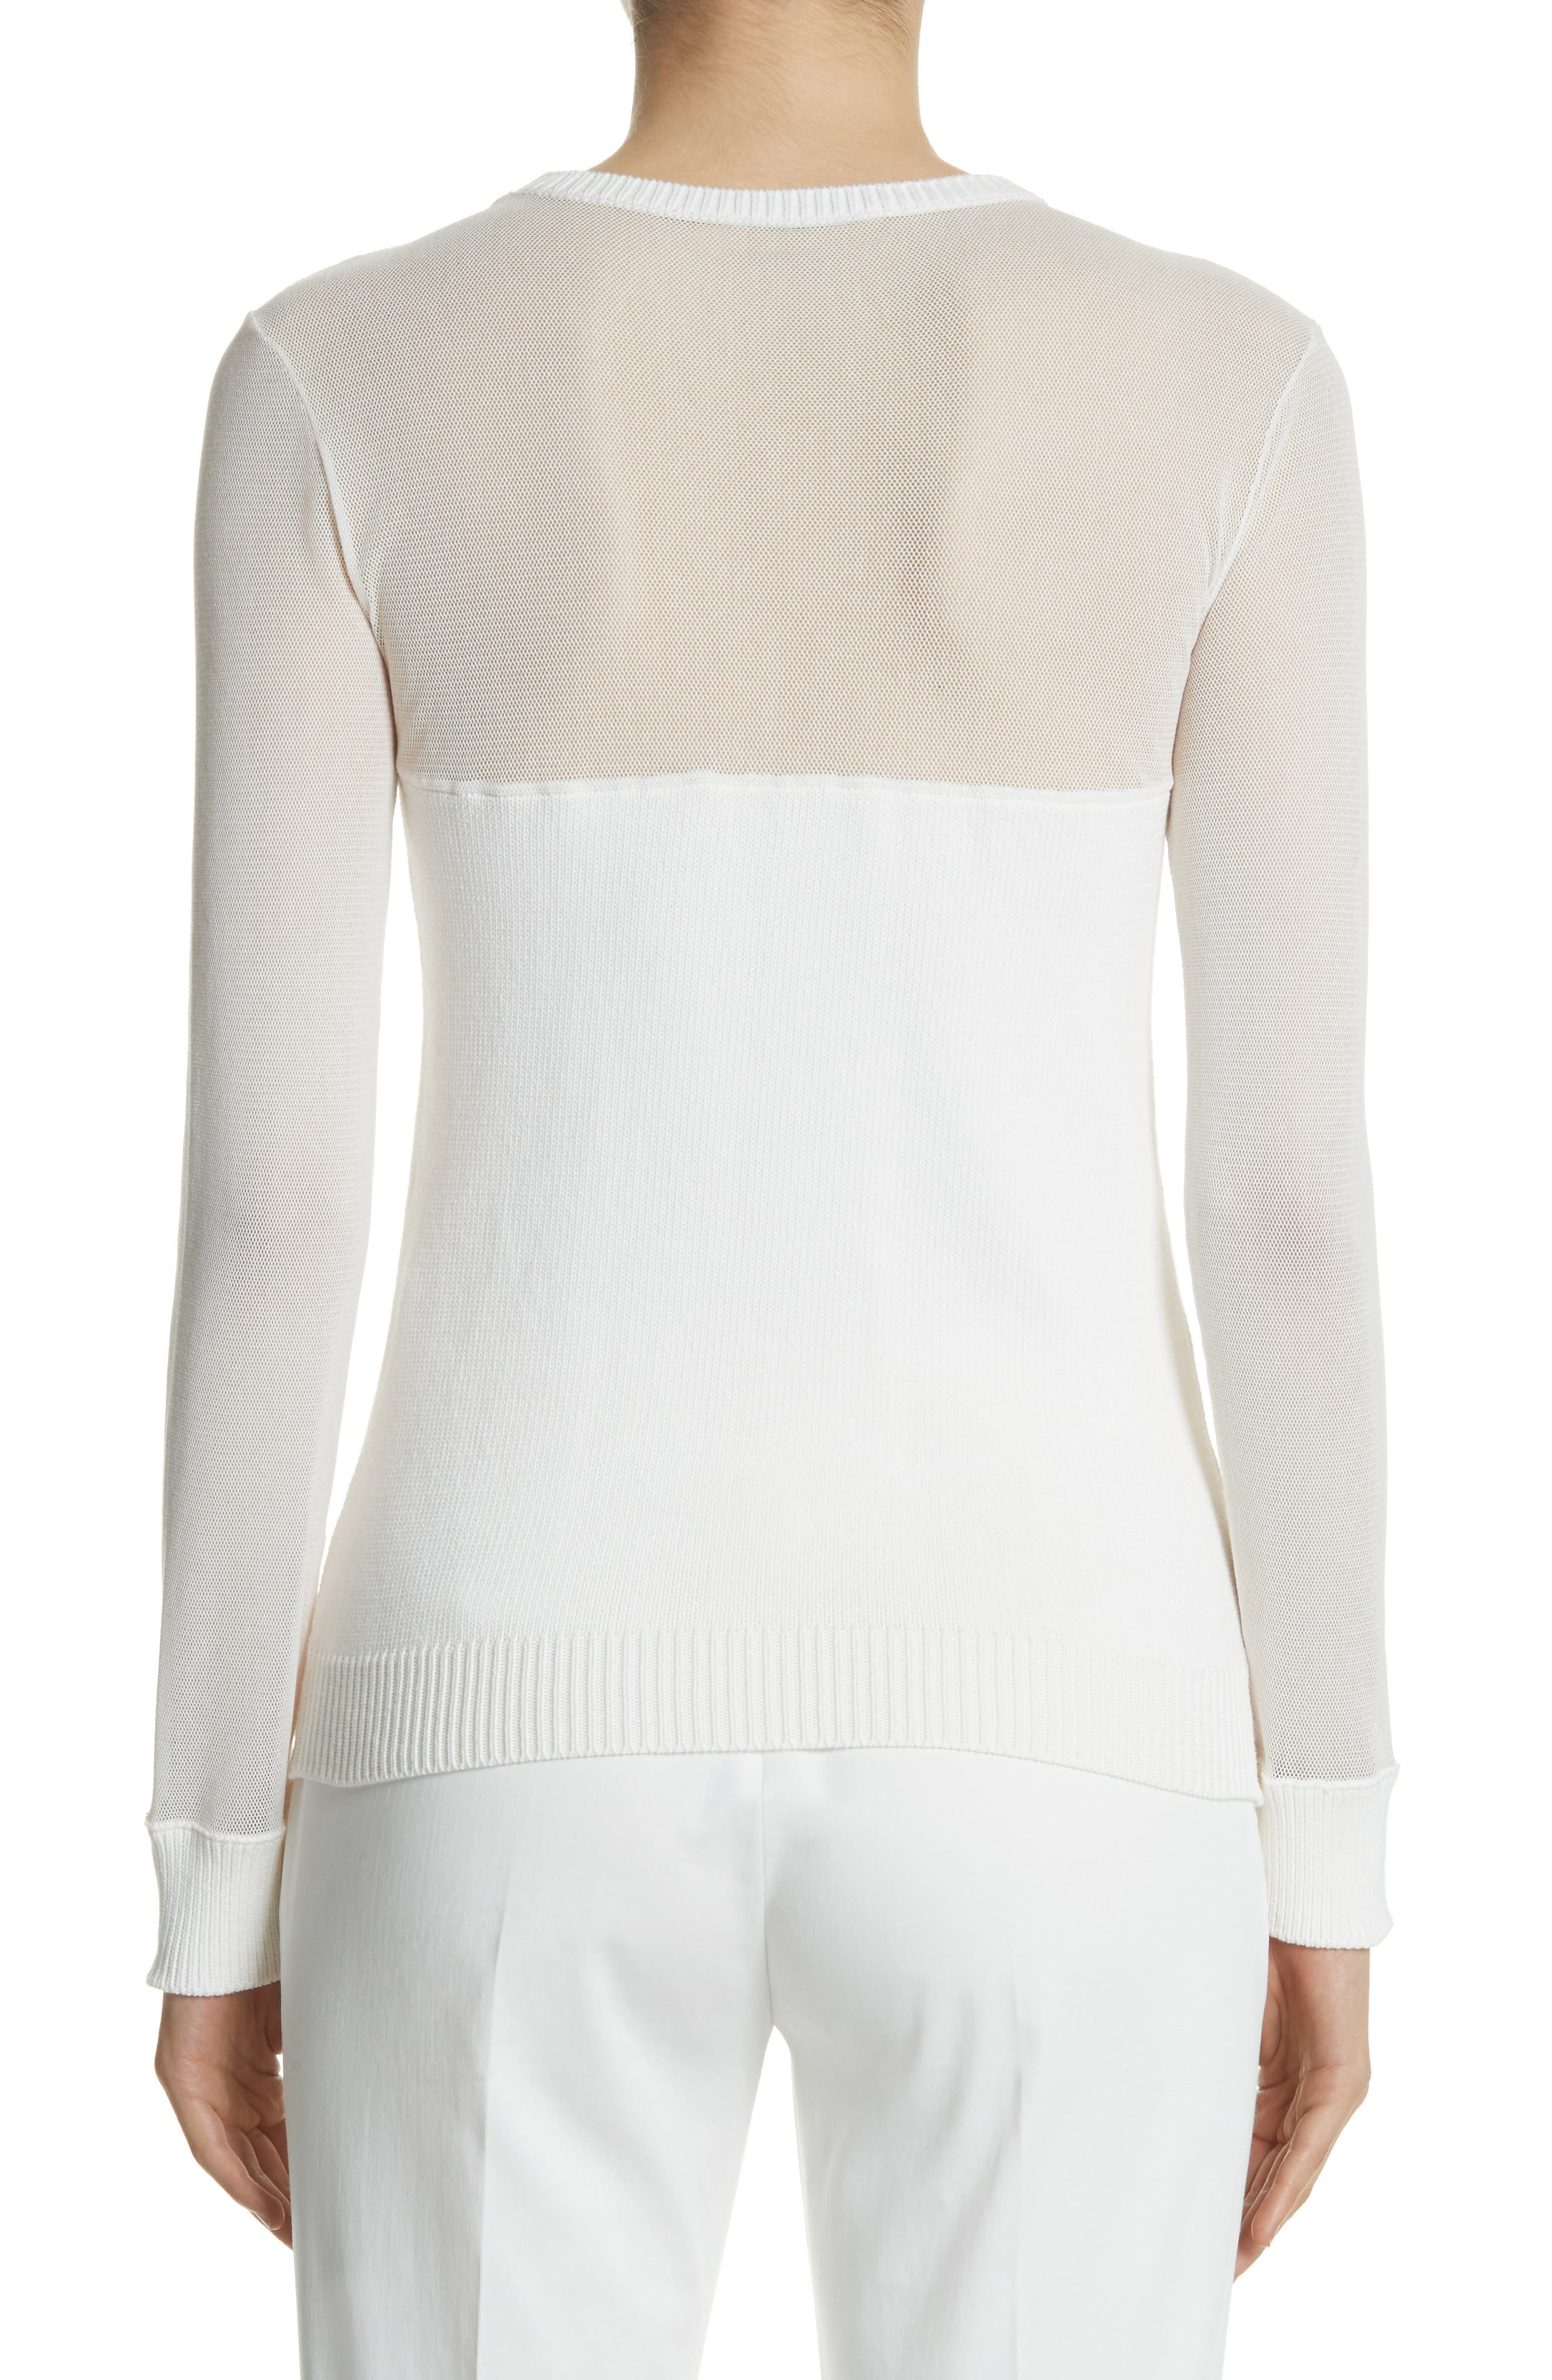 Cantore Mesh Yoke Sweater,                             Alternate thumbnail 2, color,                             Ivory